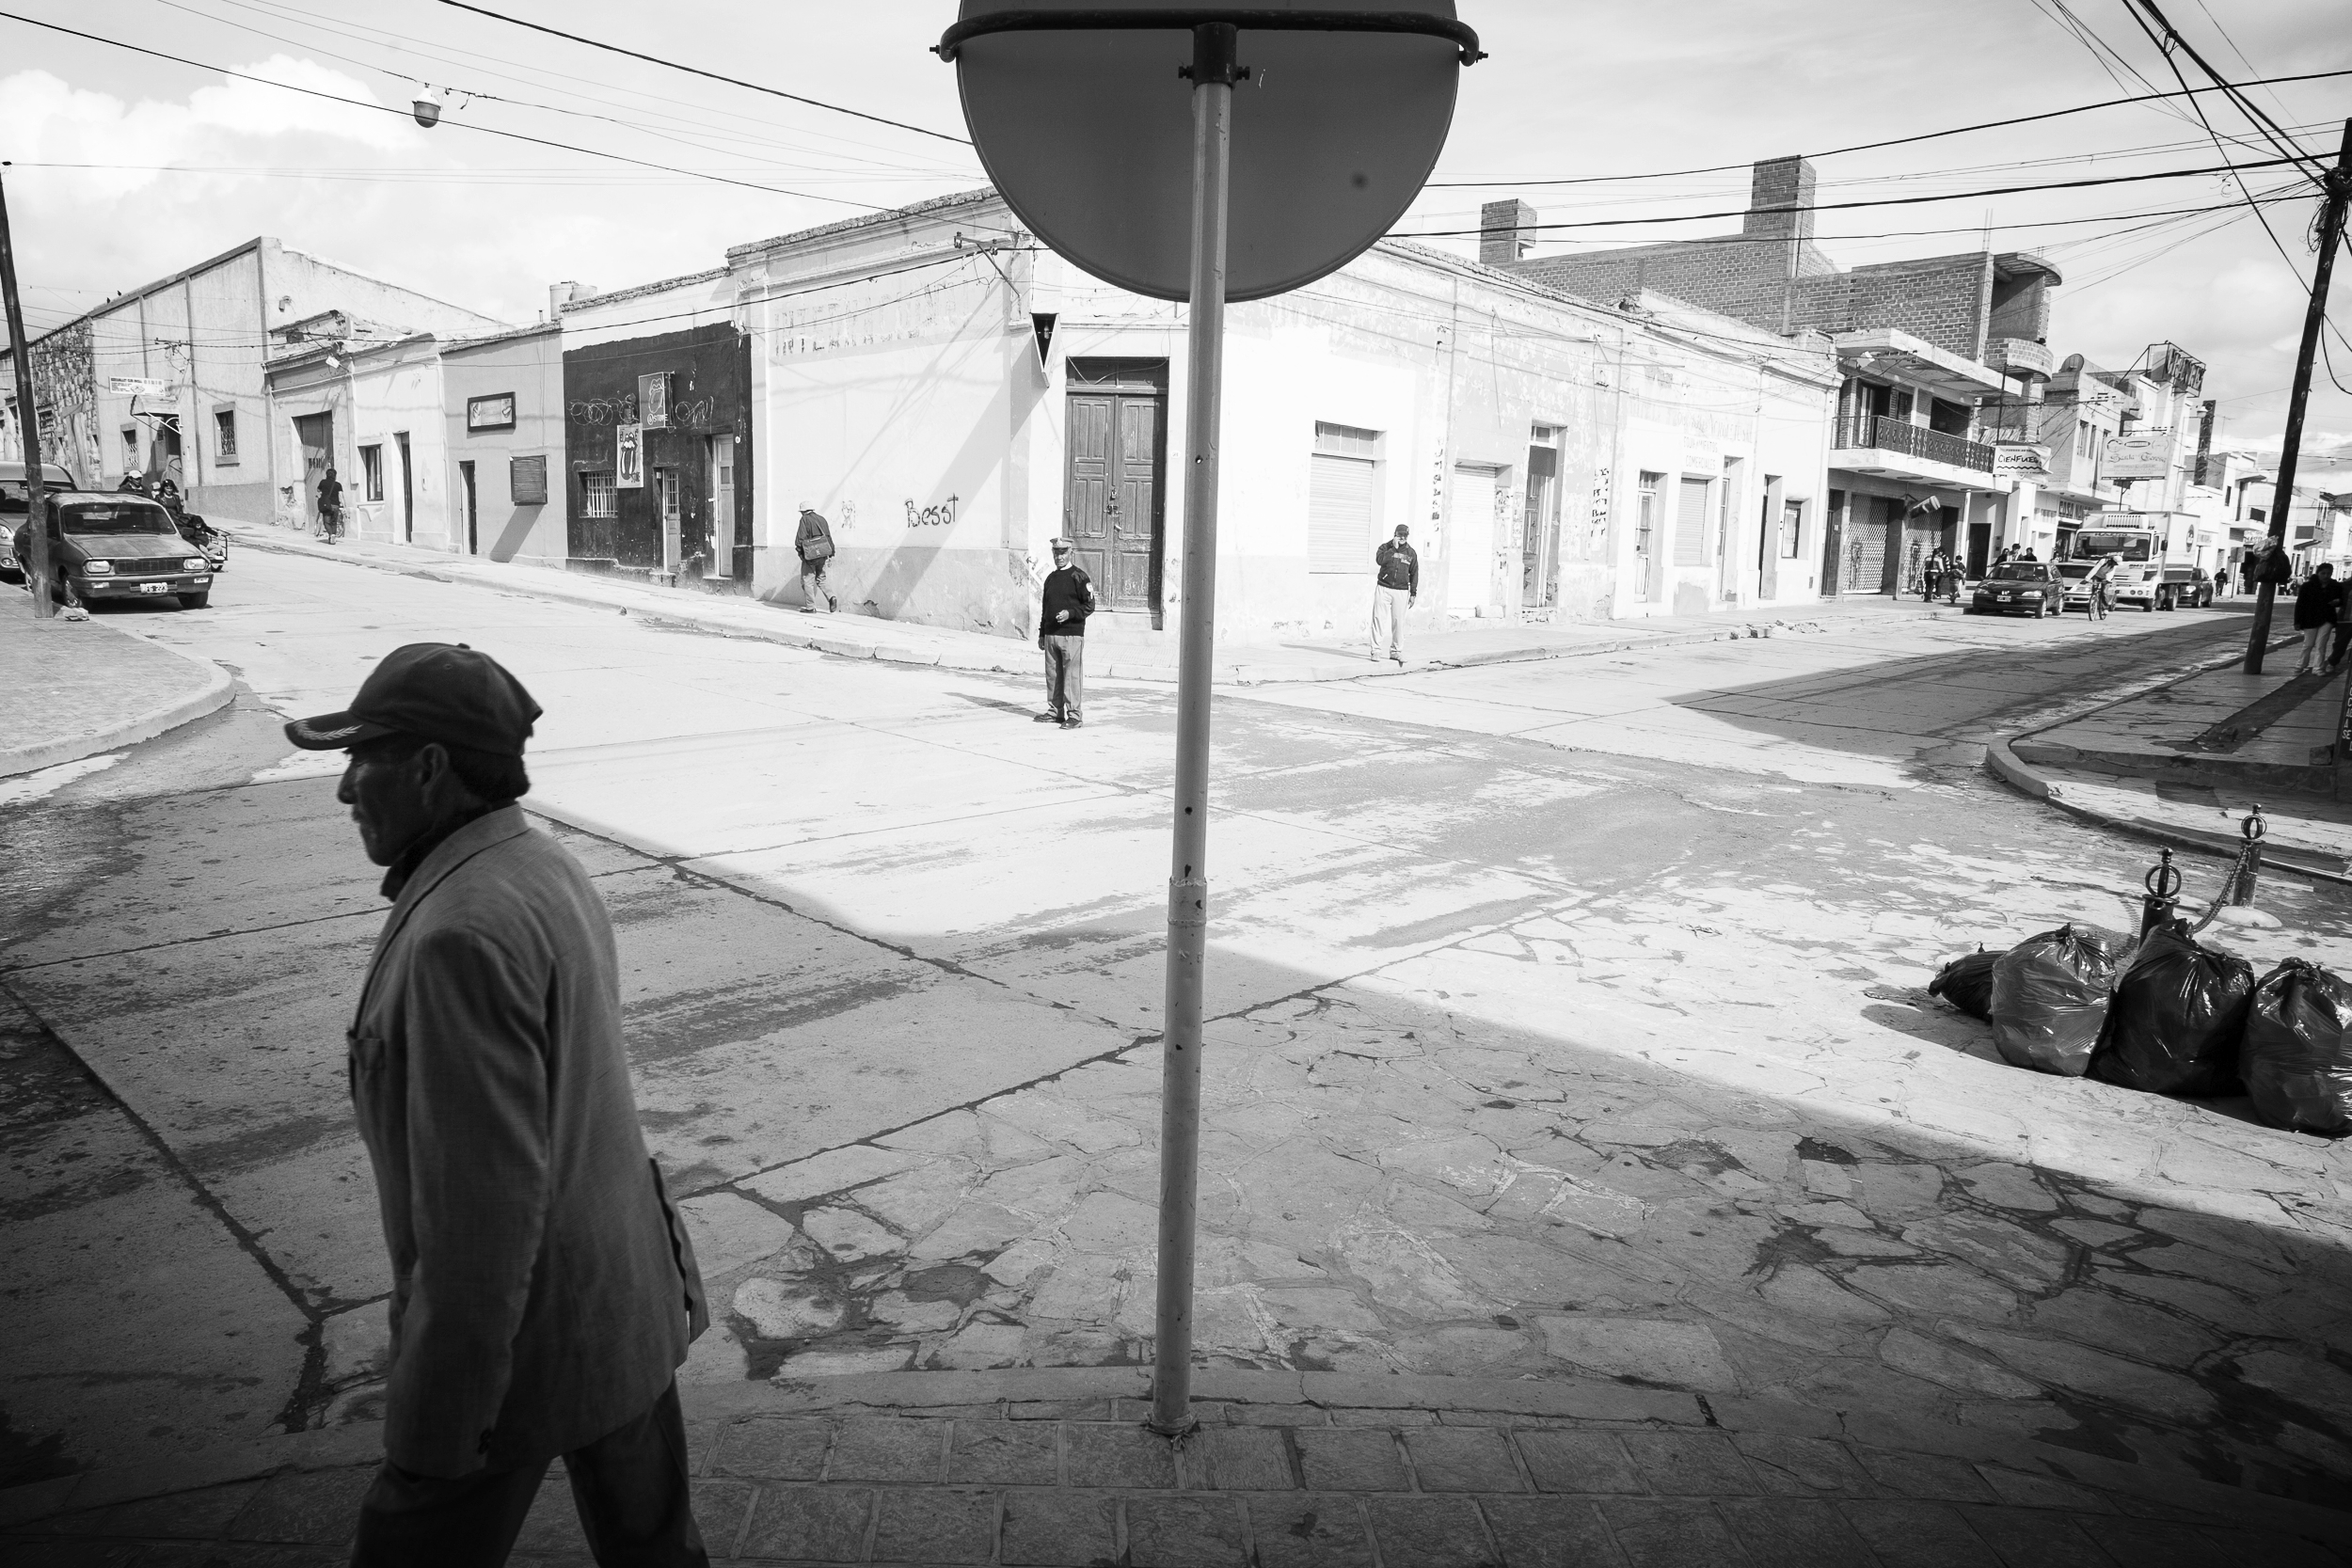 A man walks by as a police man keeps a look out. Boliva